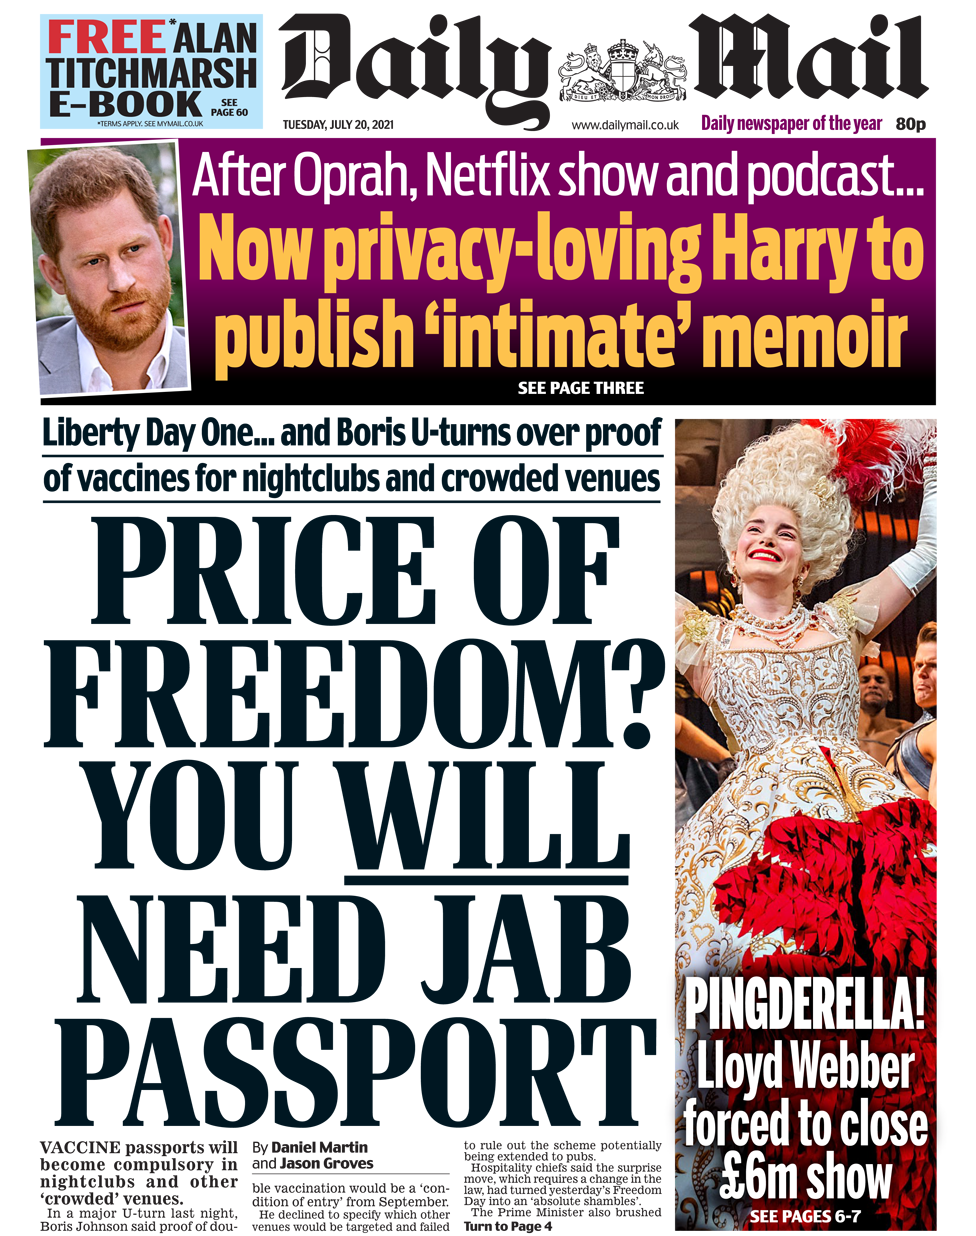 Daily Mail front page 20/07/21